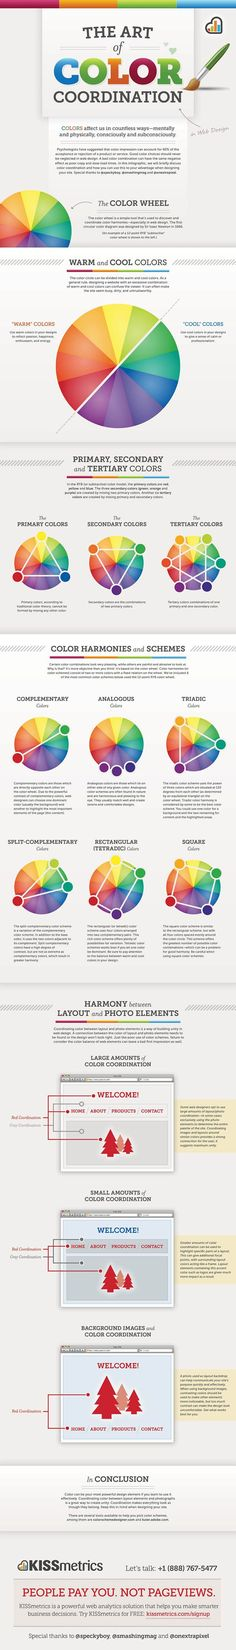 The Art of Color Coordination in Web Design [Infographic] - Smashfreakz